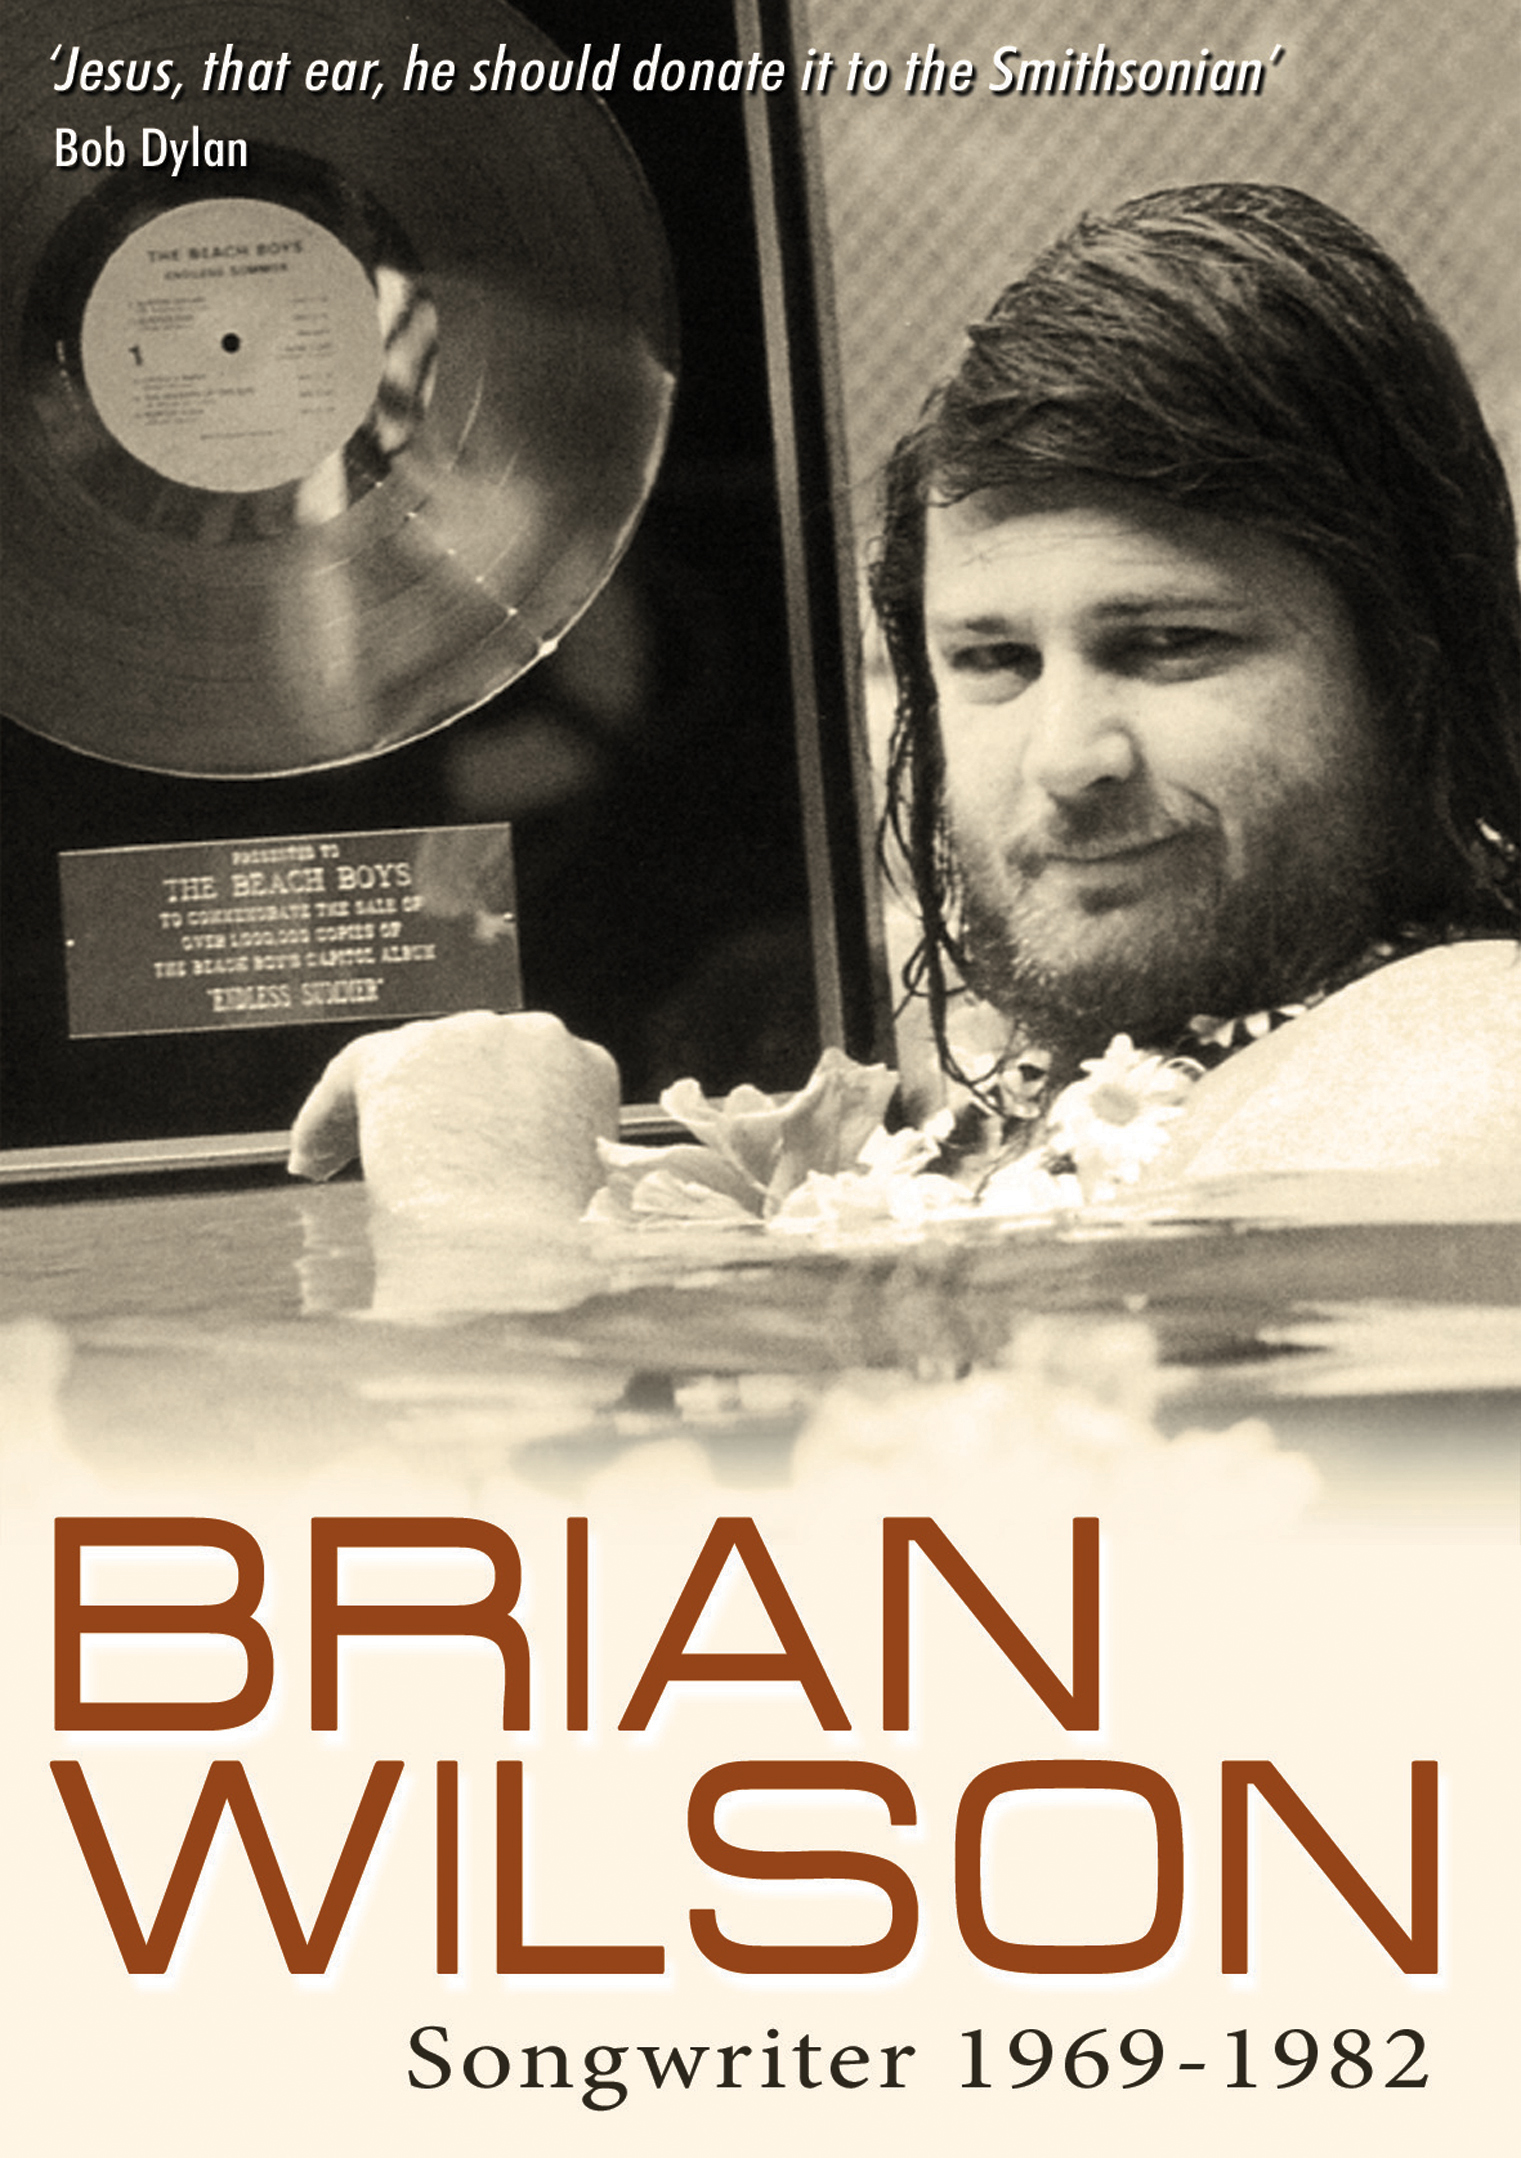 Brian Wilson: Songwriter 1969-1982